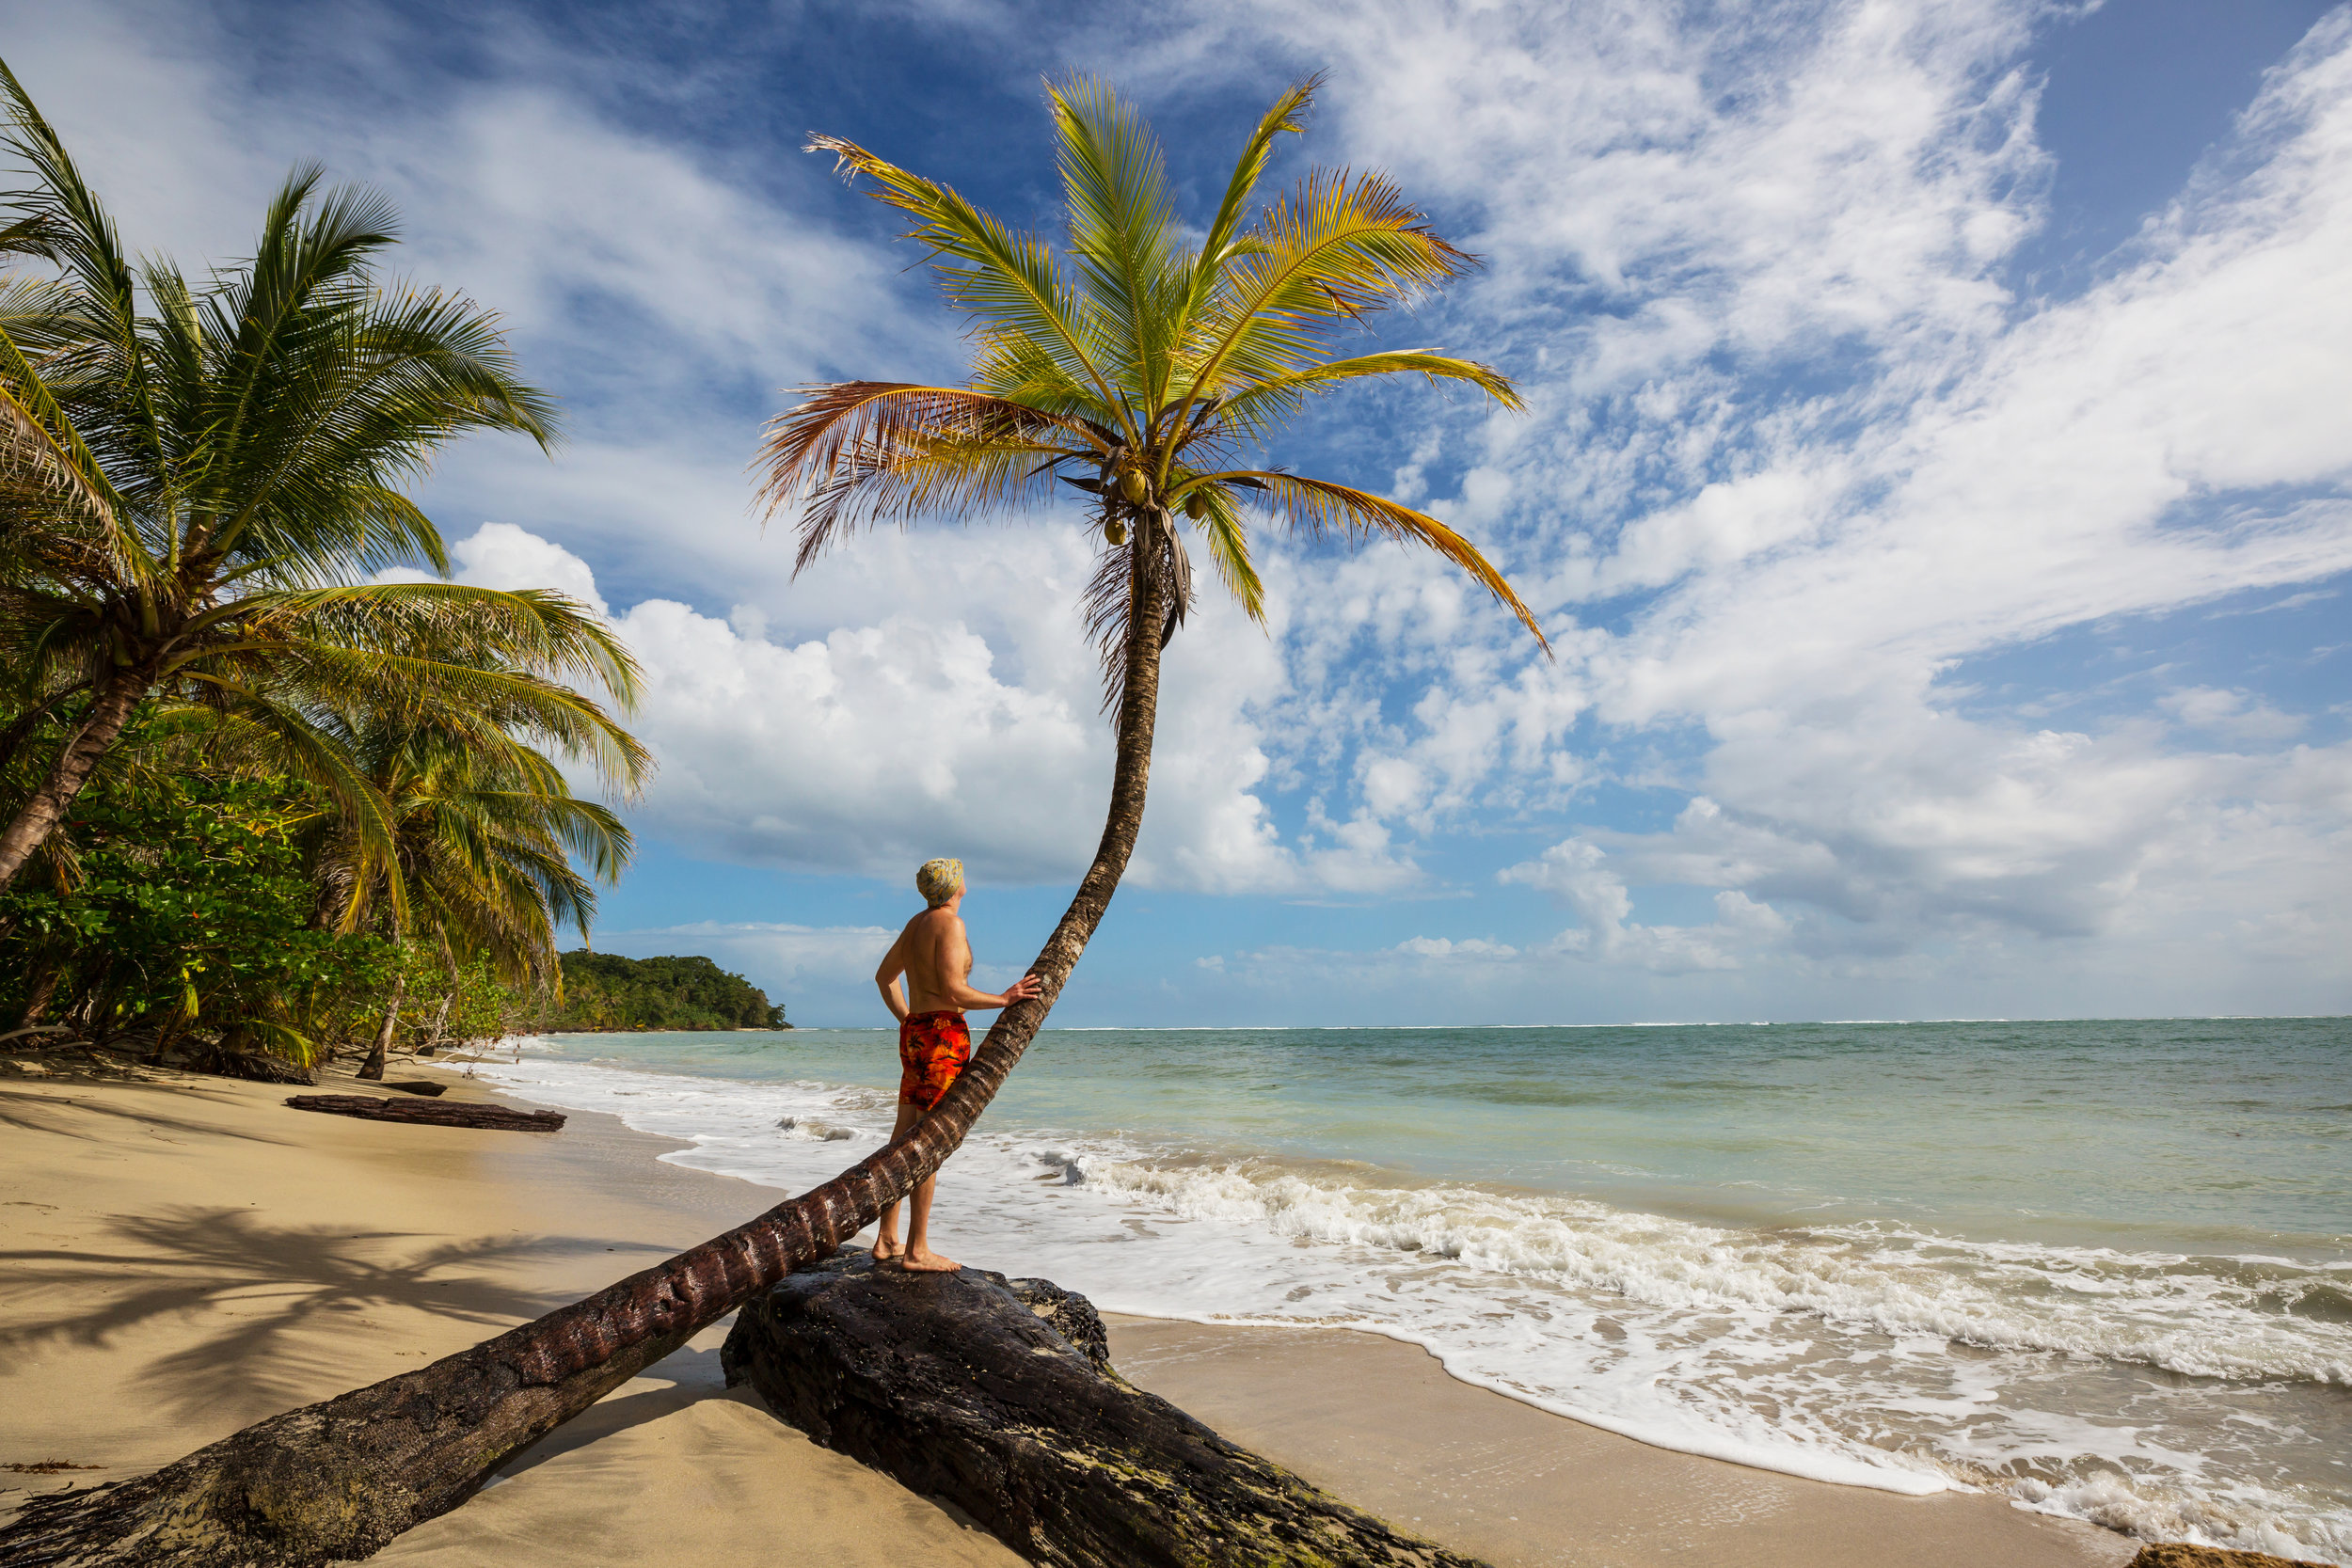 costarica_bigstock-Beautiful-tropical-Pacific-Oce-223477480.jpg